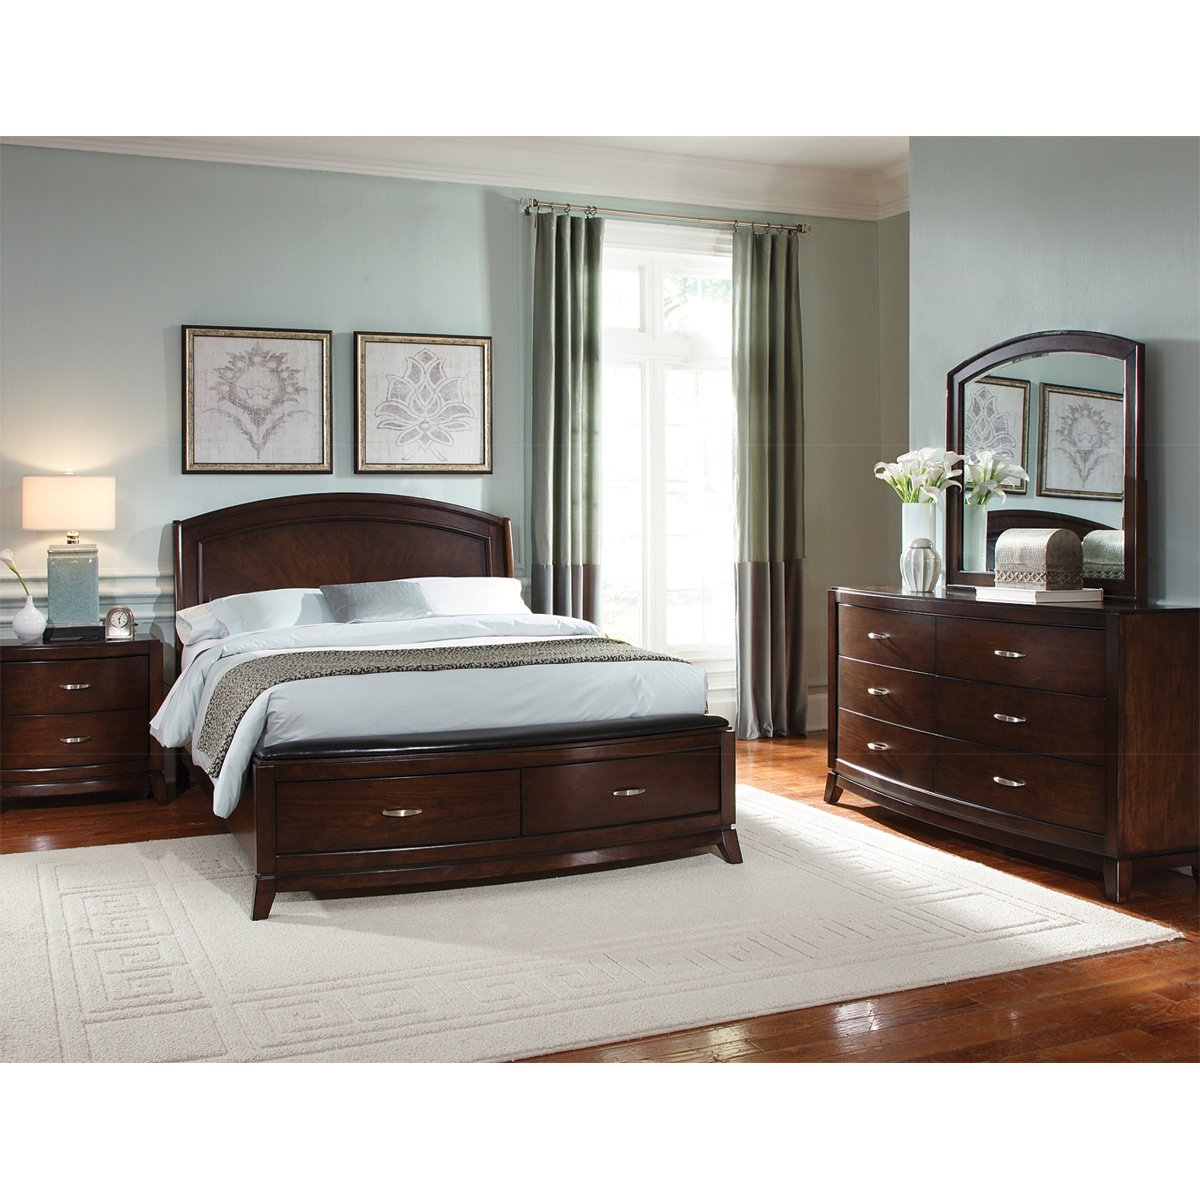 King bedroom sets las vegas nv home for Bedroom furniture 89117